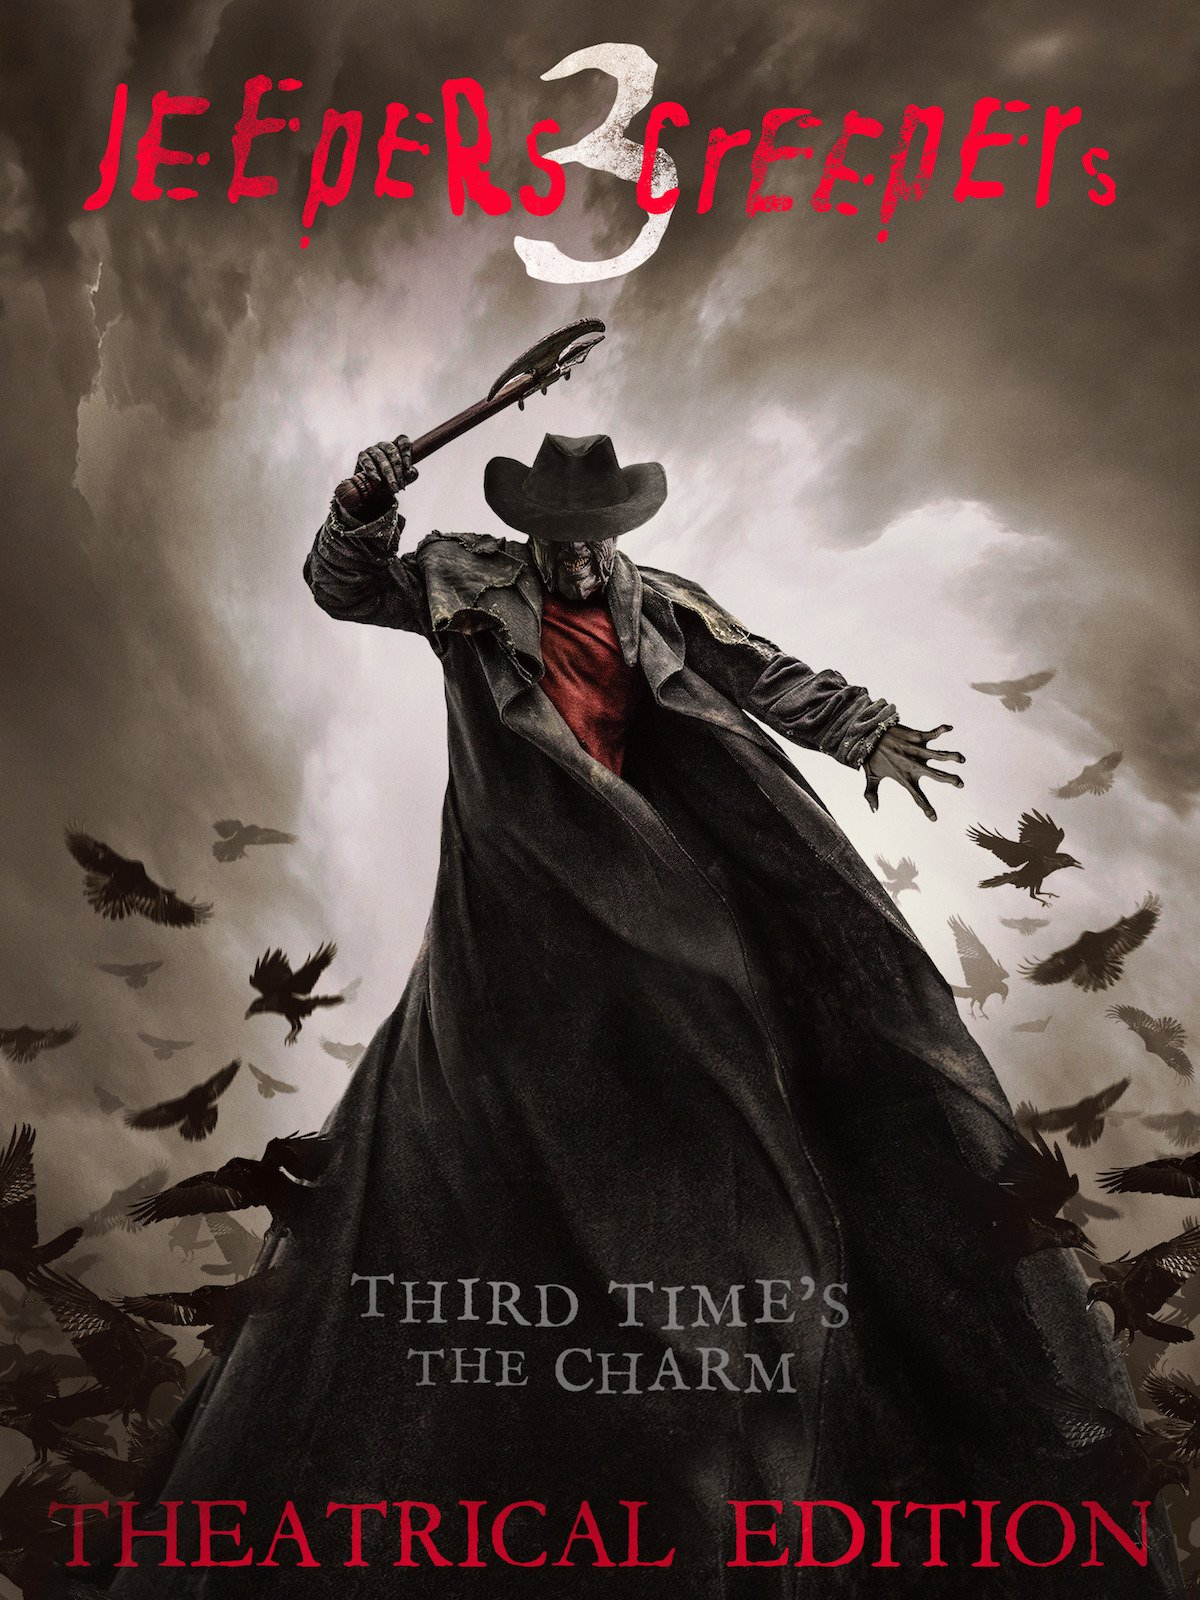 watch jeepers creepers 3 free full movie